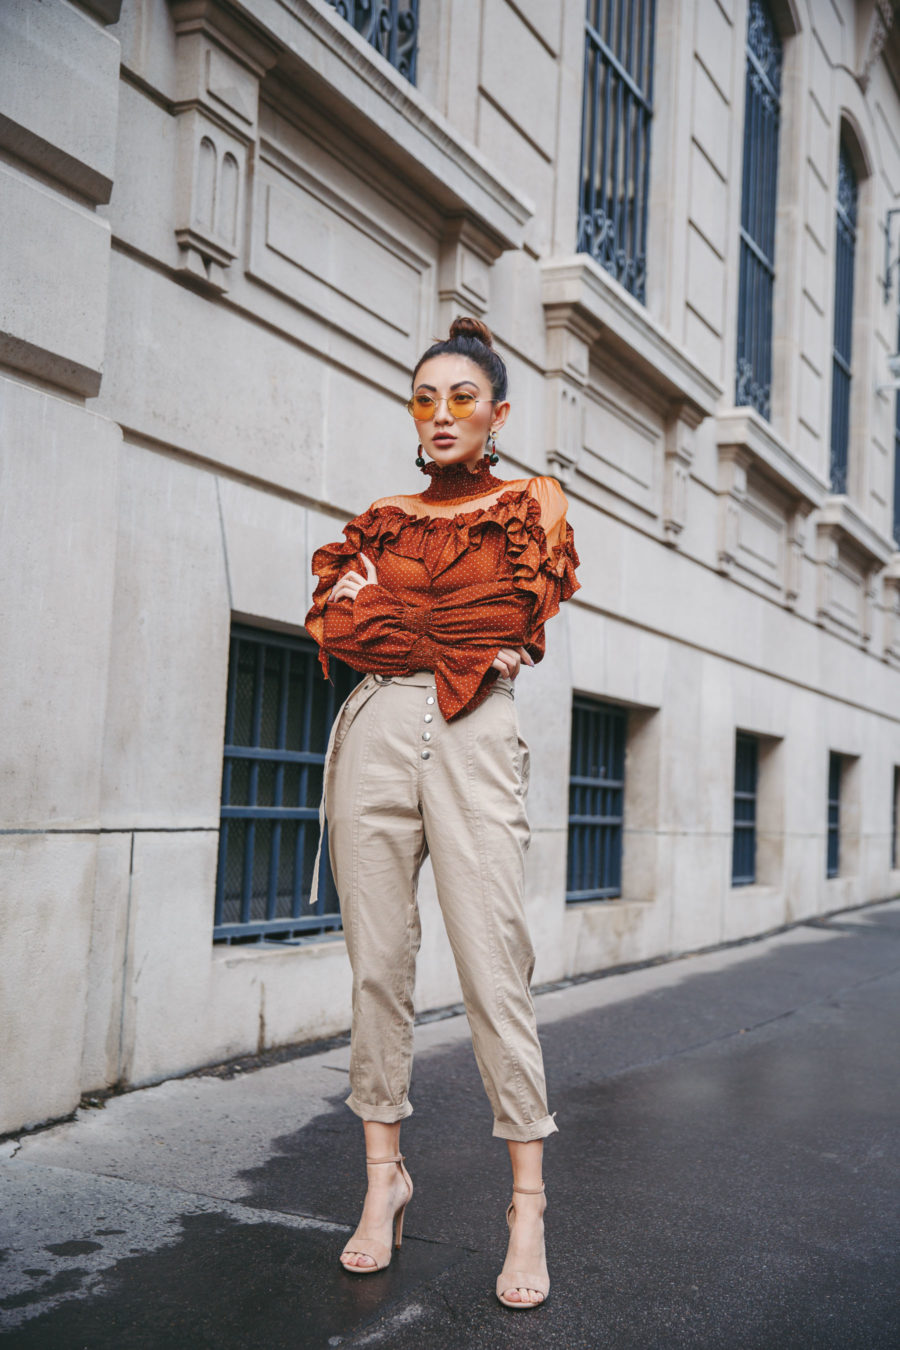 Orange Ruffle Shirt, Spring Outfits Ideas // NotJessFashion.com